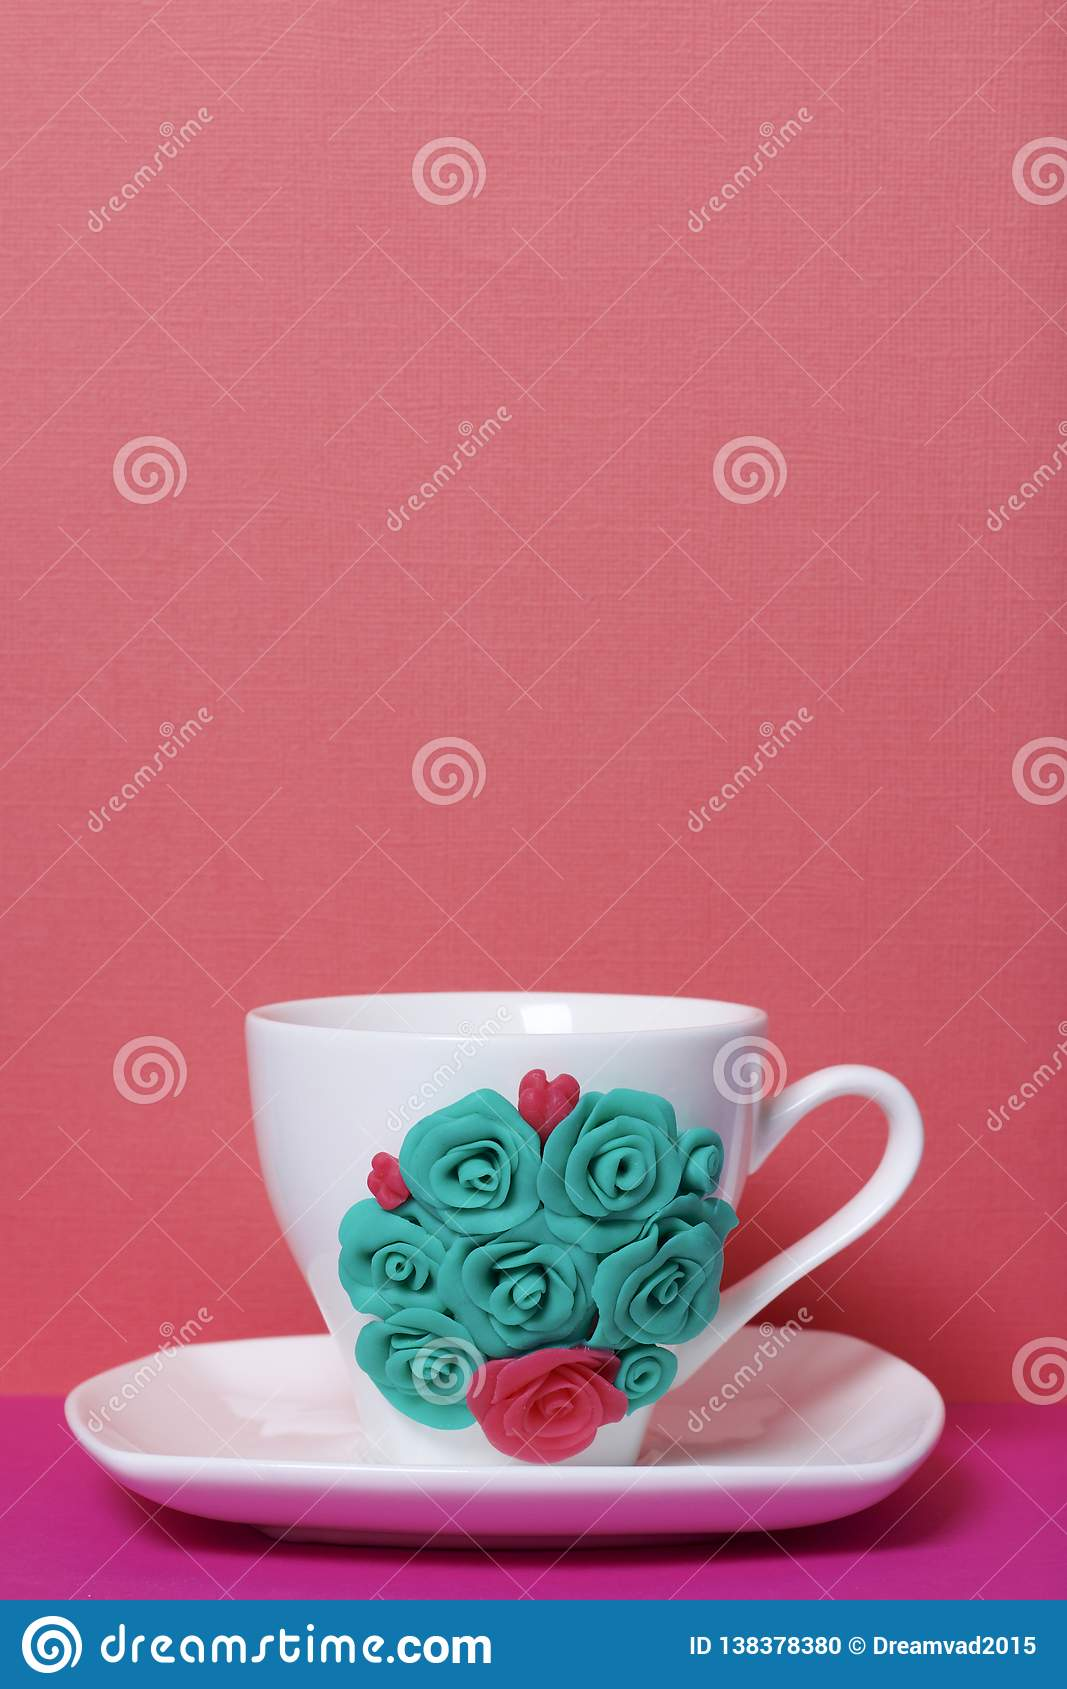 Mug Decorated With Flowers Made Of Polymer Clay Stock Photo Image Of Handmade Skill 138378380